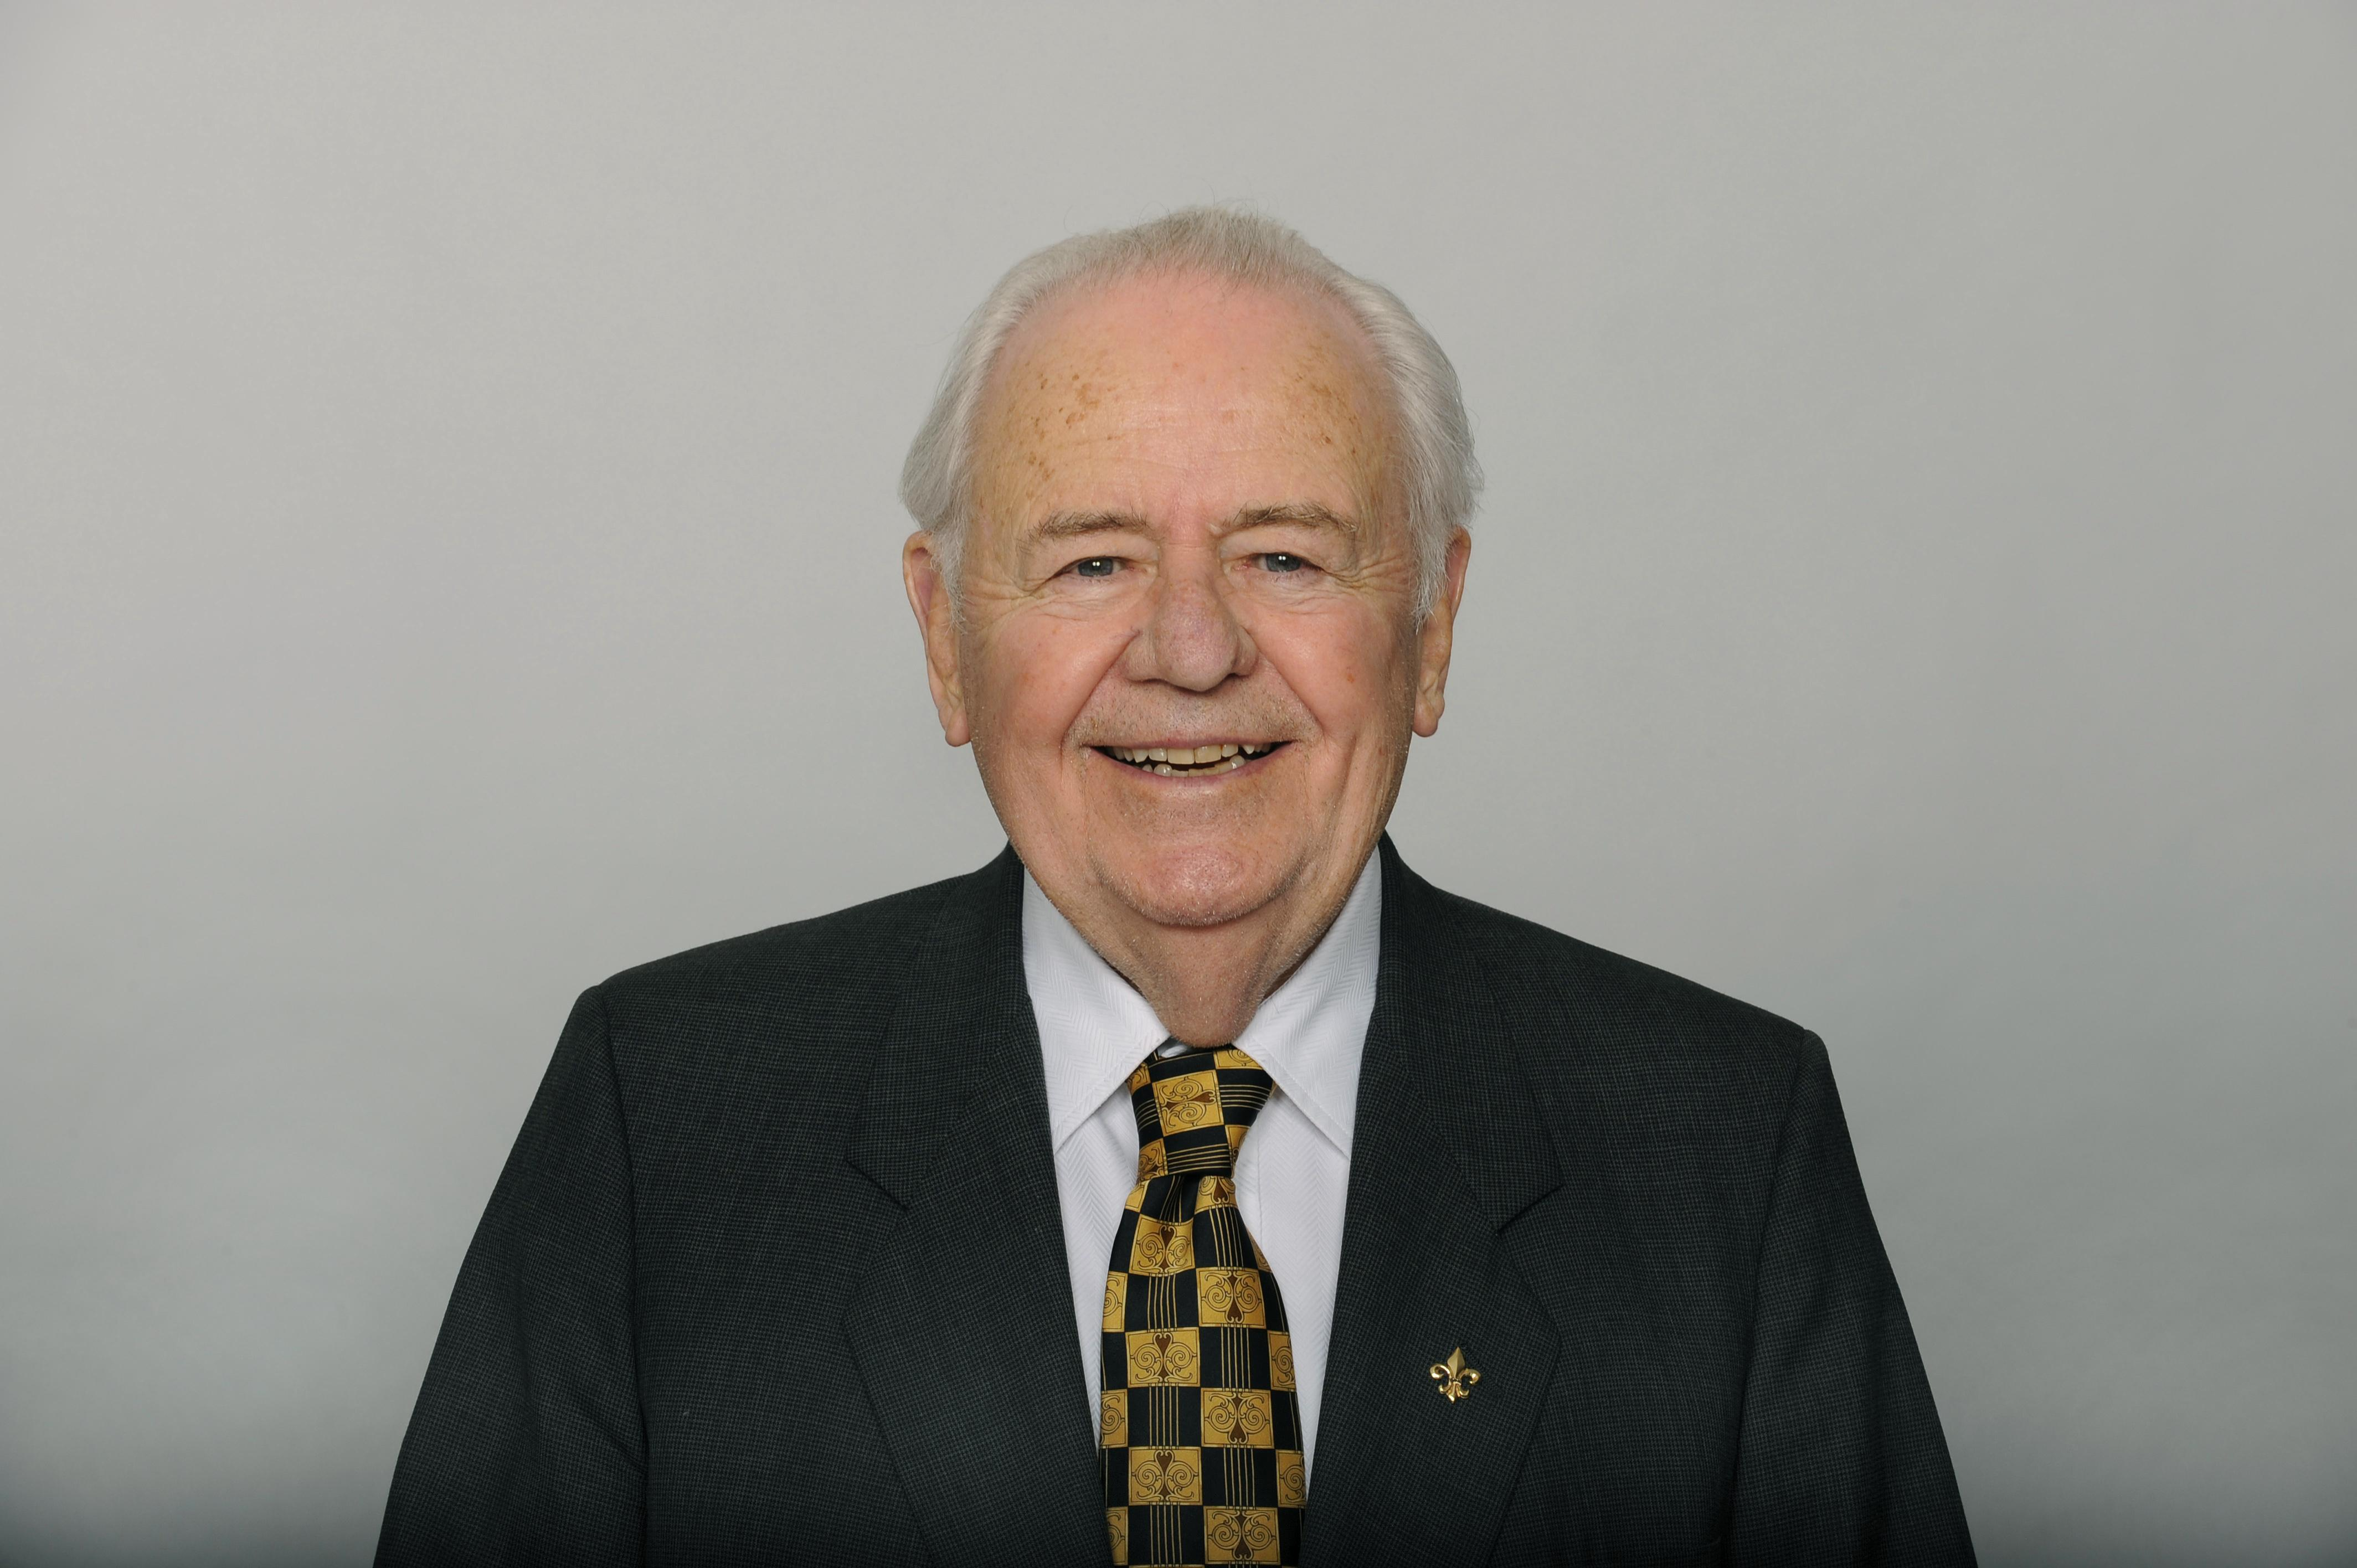 Tom Benson was also the owner of NBA side New Orleans Pelicans